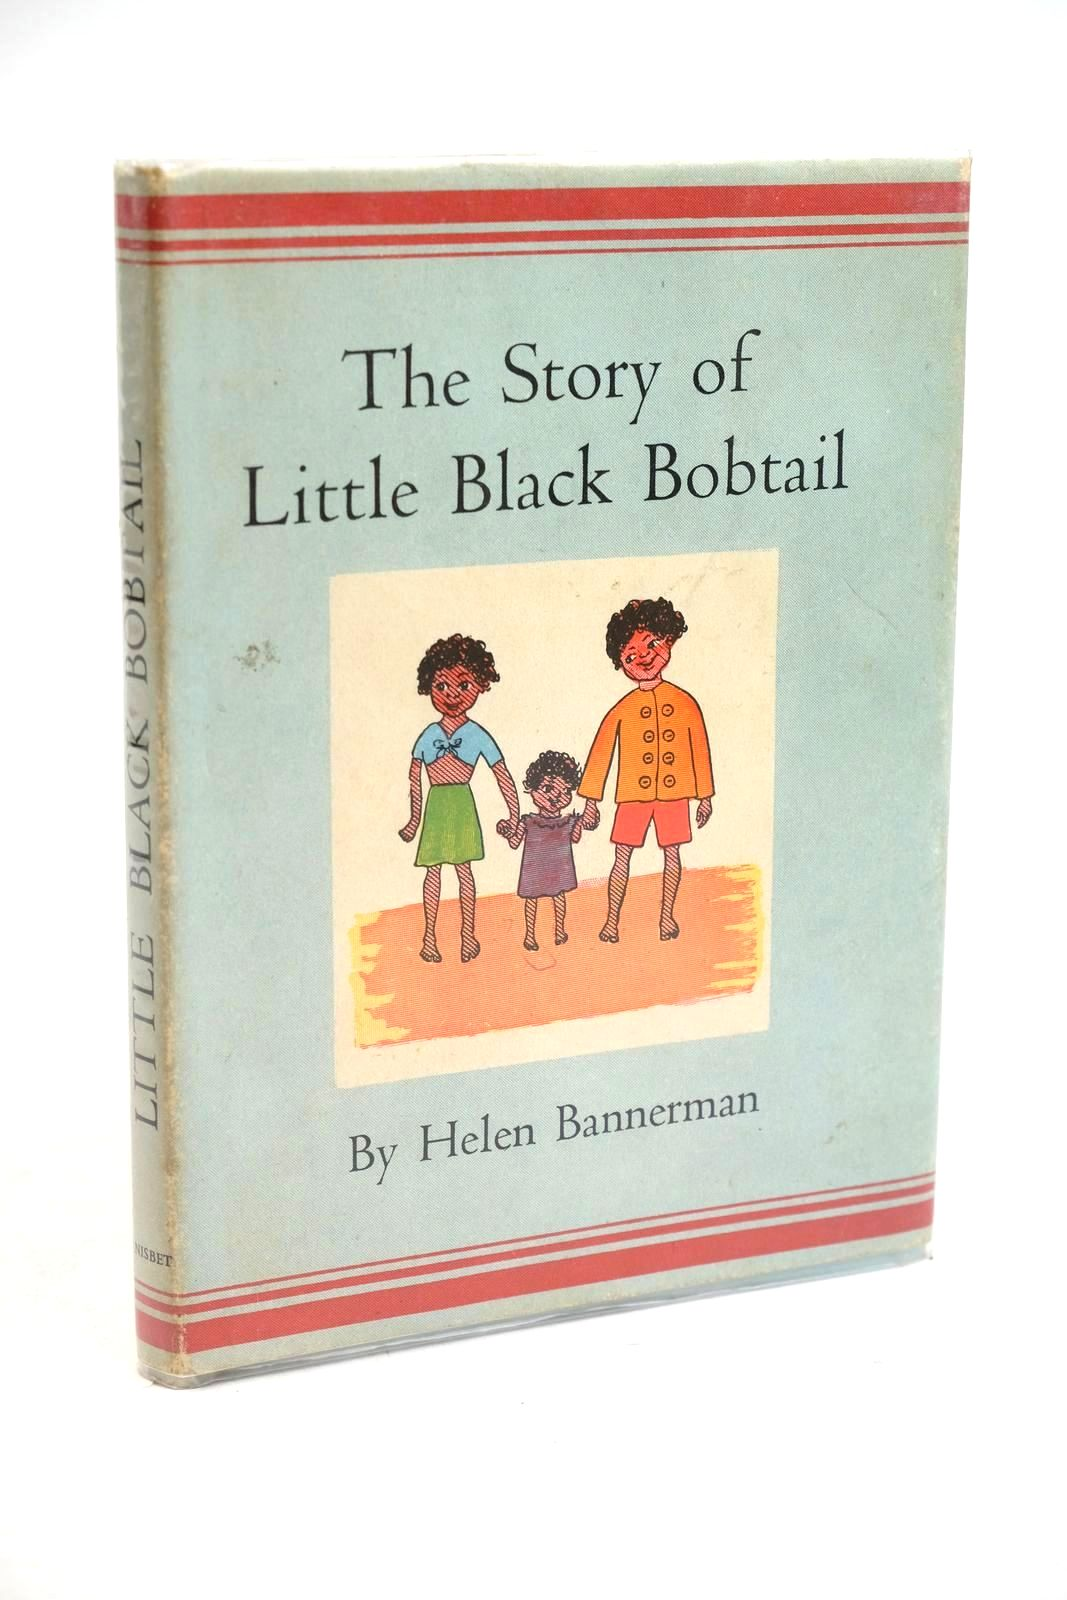 Photo of THE STORY OF LITTLE BLACK BOBTAIL written by Bannerman, Helen illustrated by Bannerman, Helen published by Nisbet & Co. Ltd. (STOCK CODE: 1320375)  for sale by Stella & Rose's Books